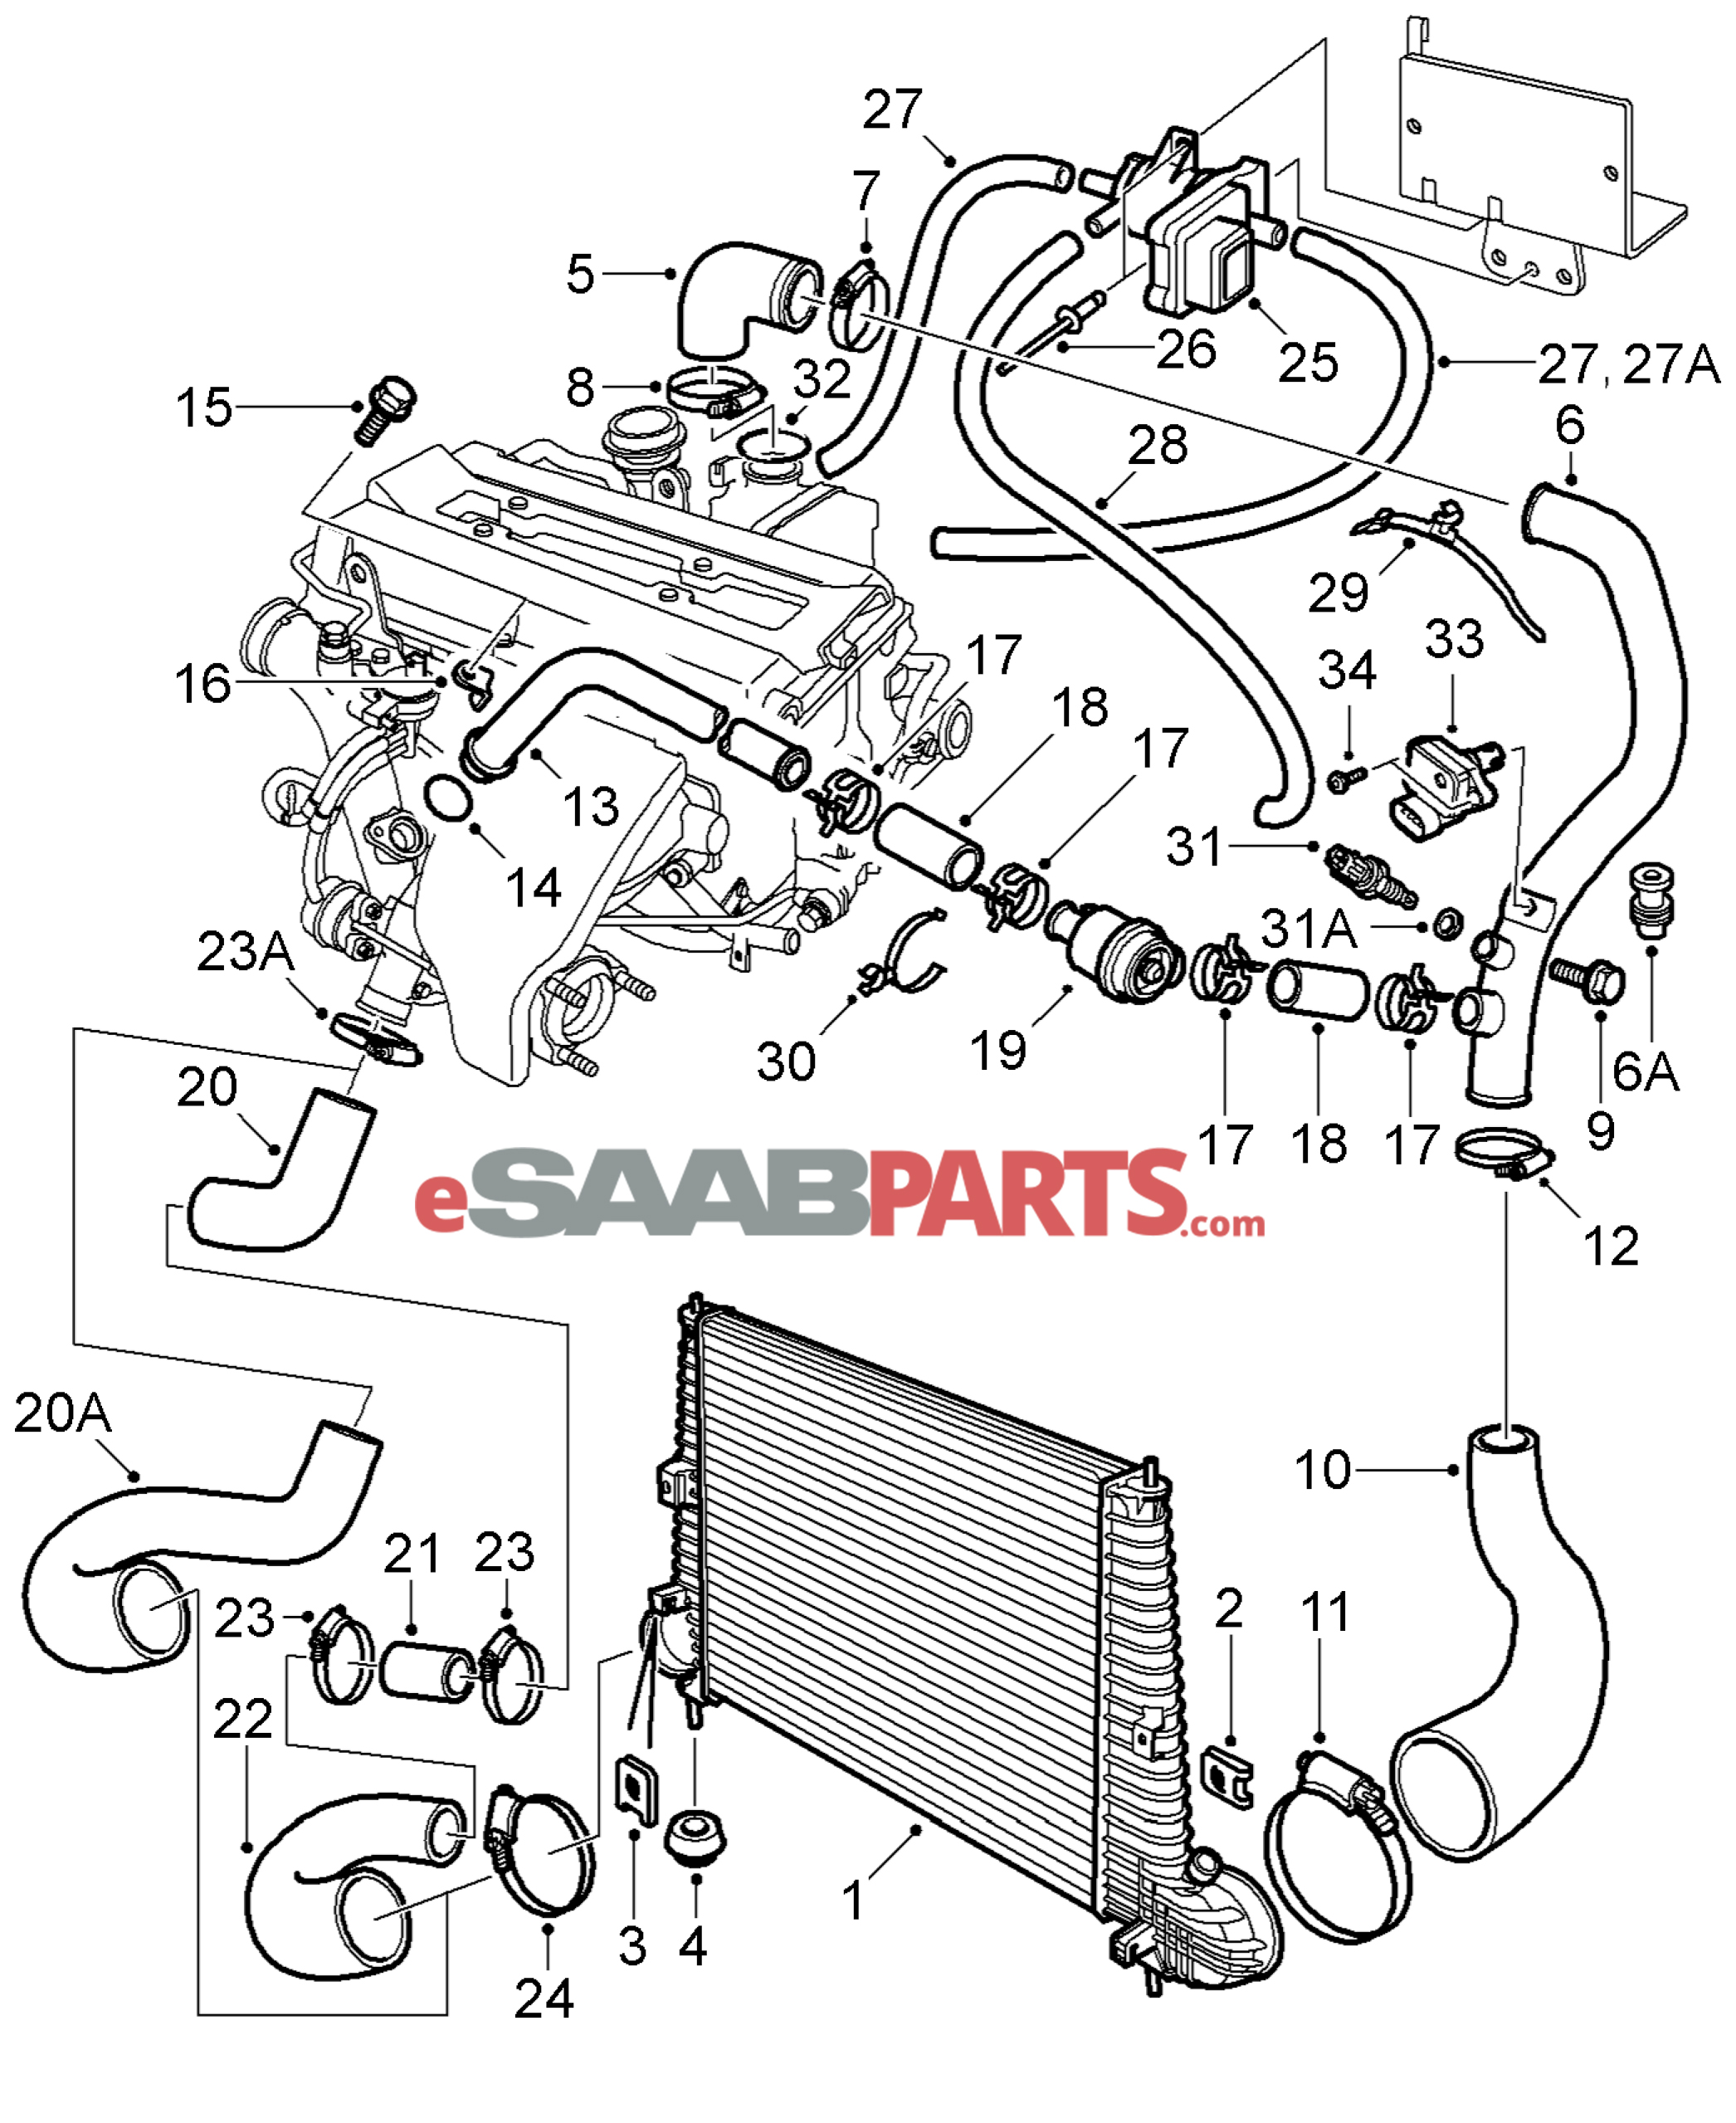 saab 93 wiring diagram transmission leak